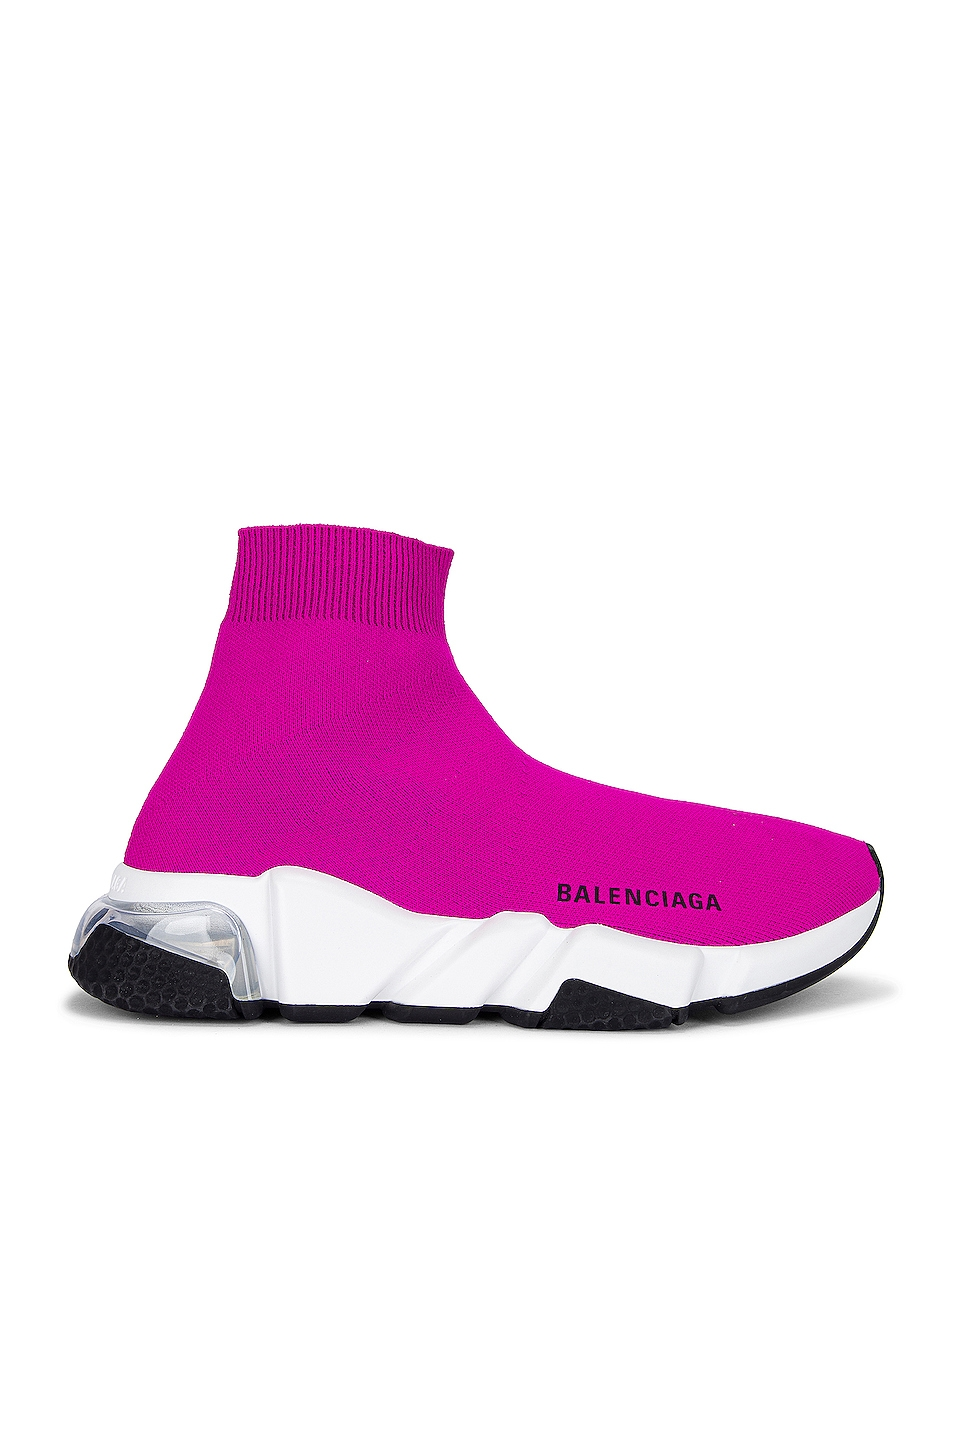 Image 1 of Balenciaga Speed Light Sneakers in Fuxia & White